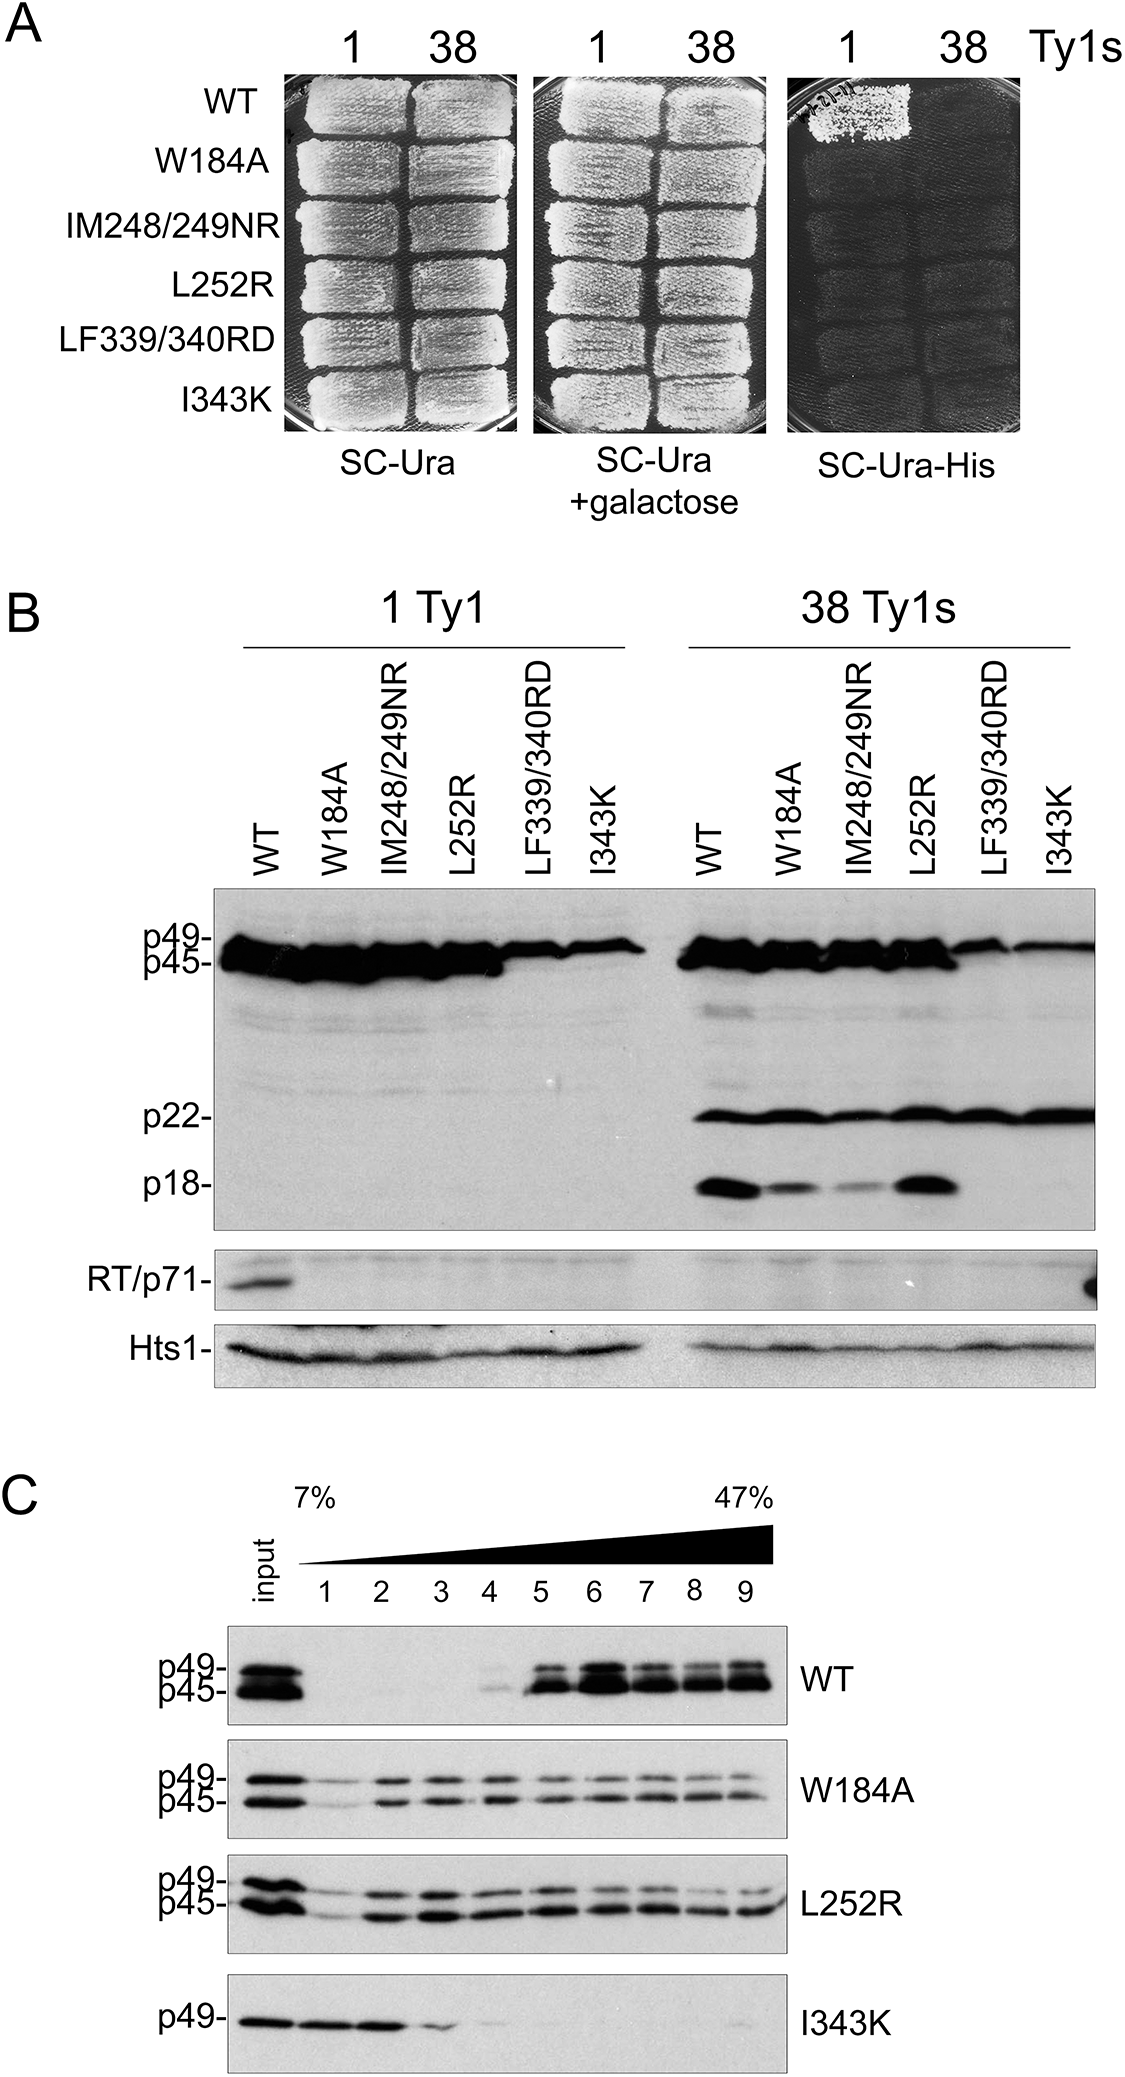 Alterations in Gag helical domains disrupt transposition and Ty1 protein cleavage.